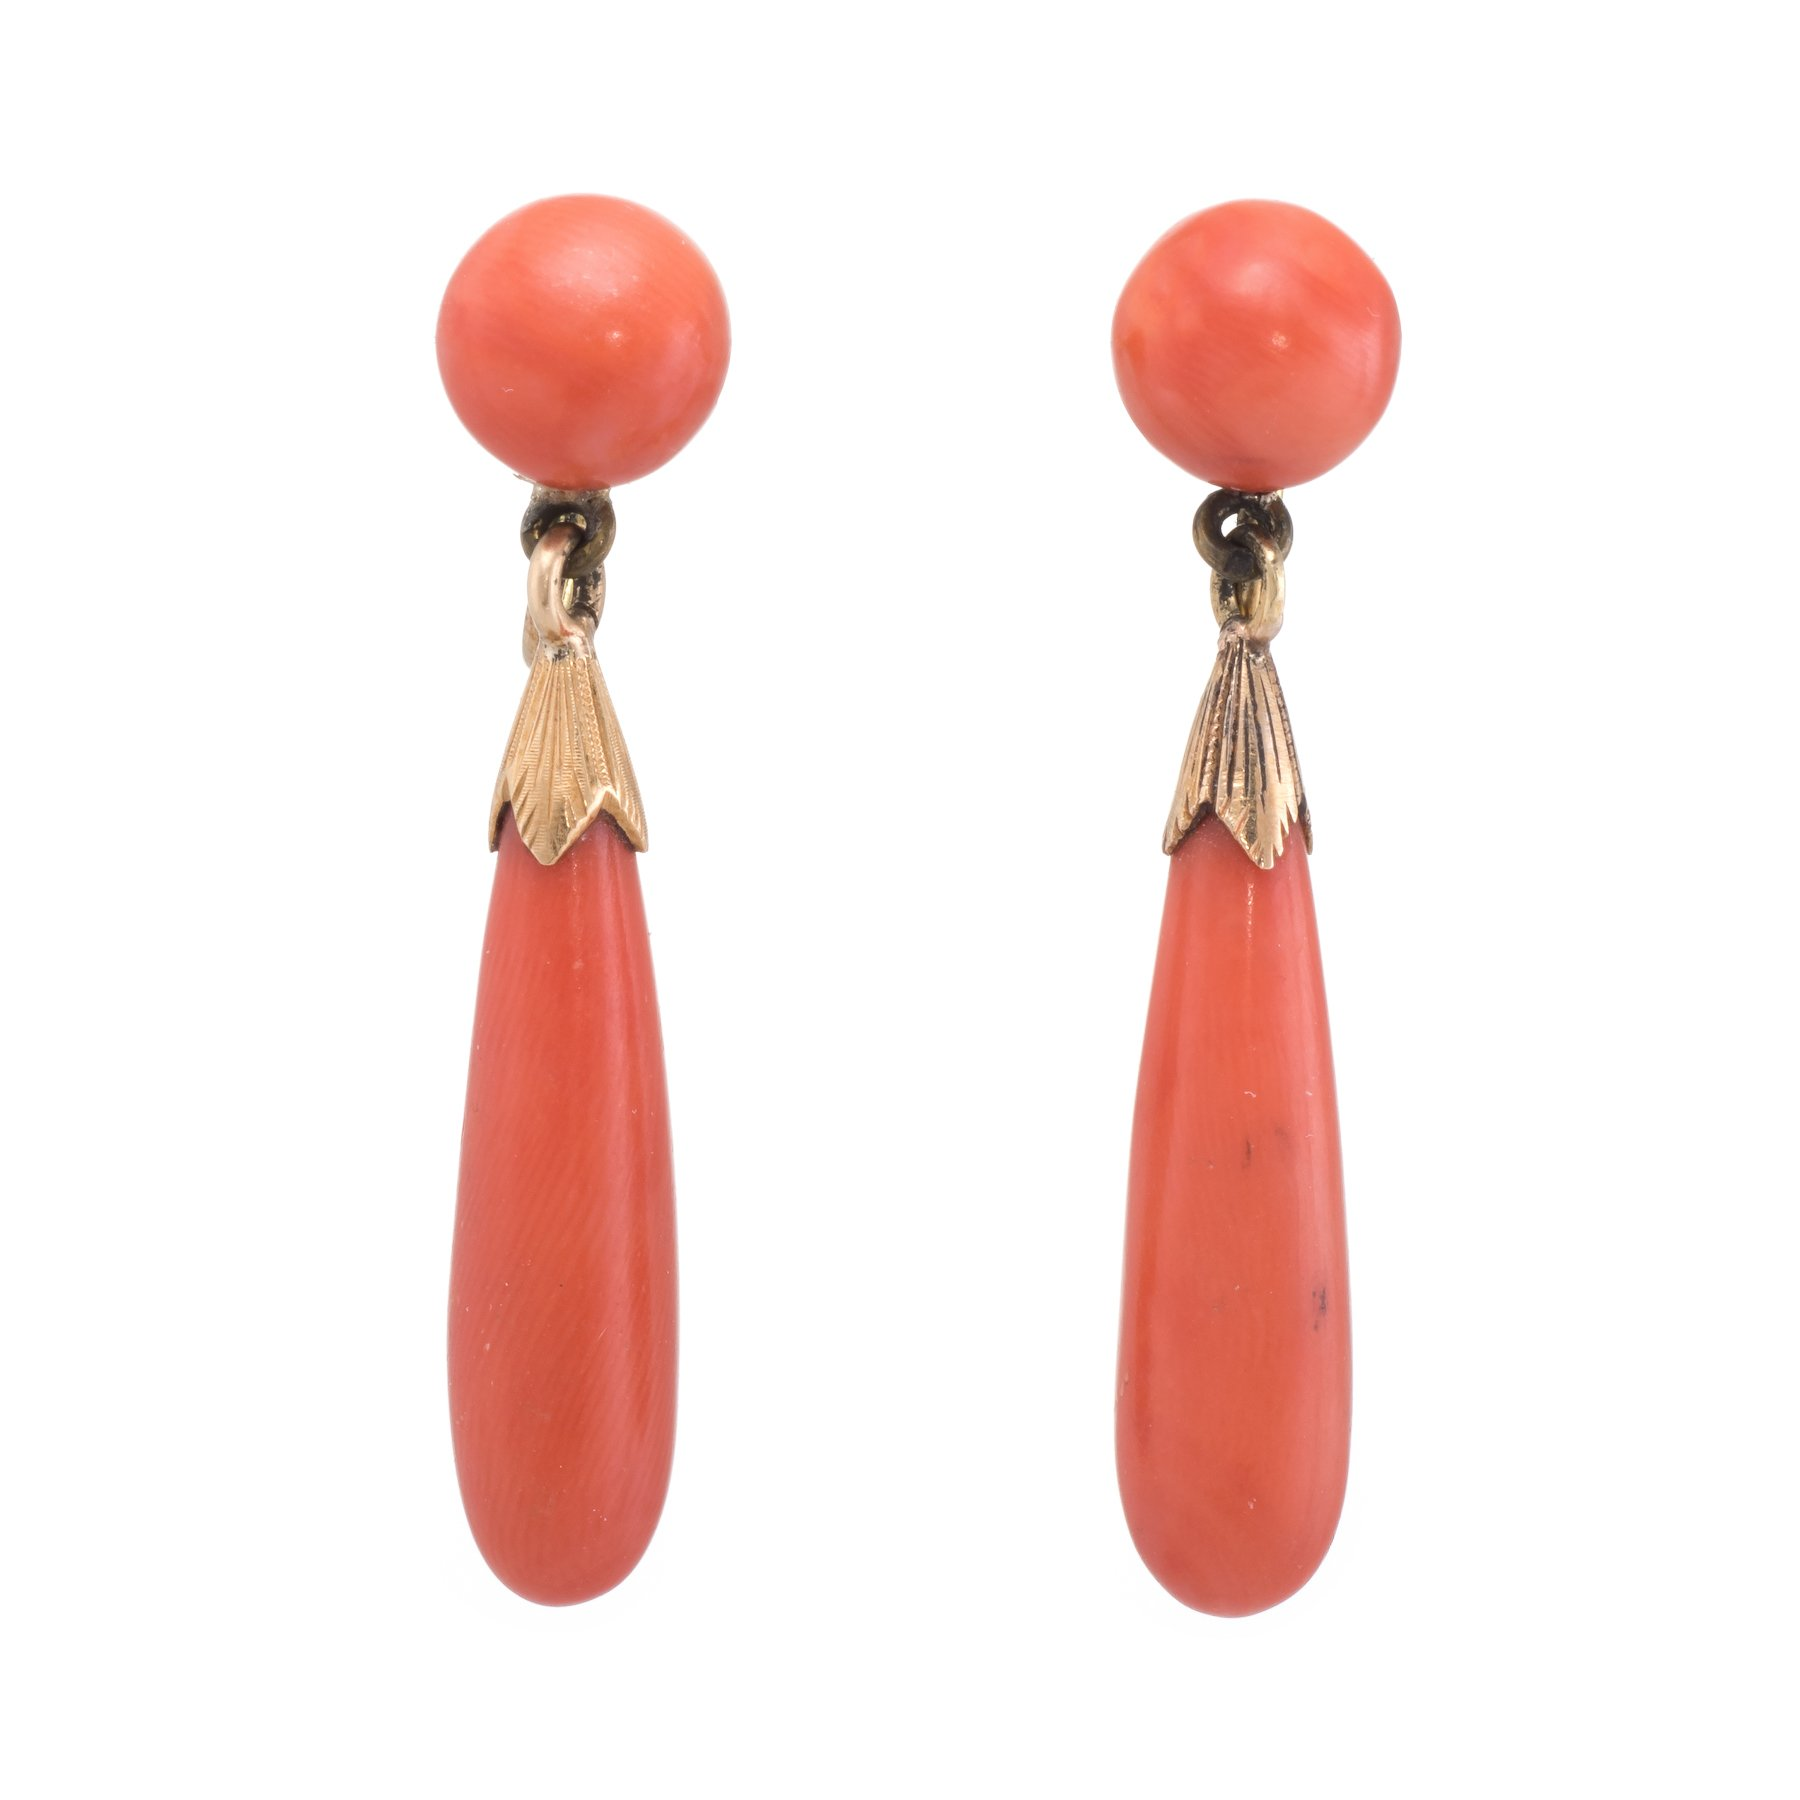 c9f334f69 Overview: Elegant pair of vintage Art Deco era earrings (circa 1920s to  1930s), crafted in 18k yellow gold. Natural coral measures 23mm x 6.5mm  (lower) and ...